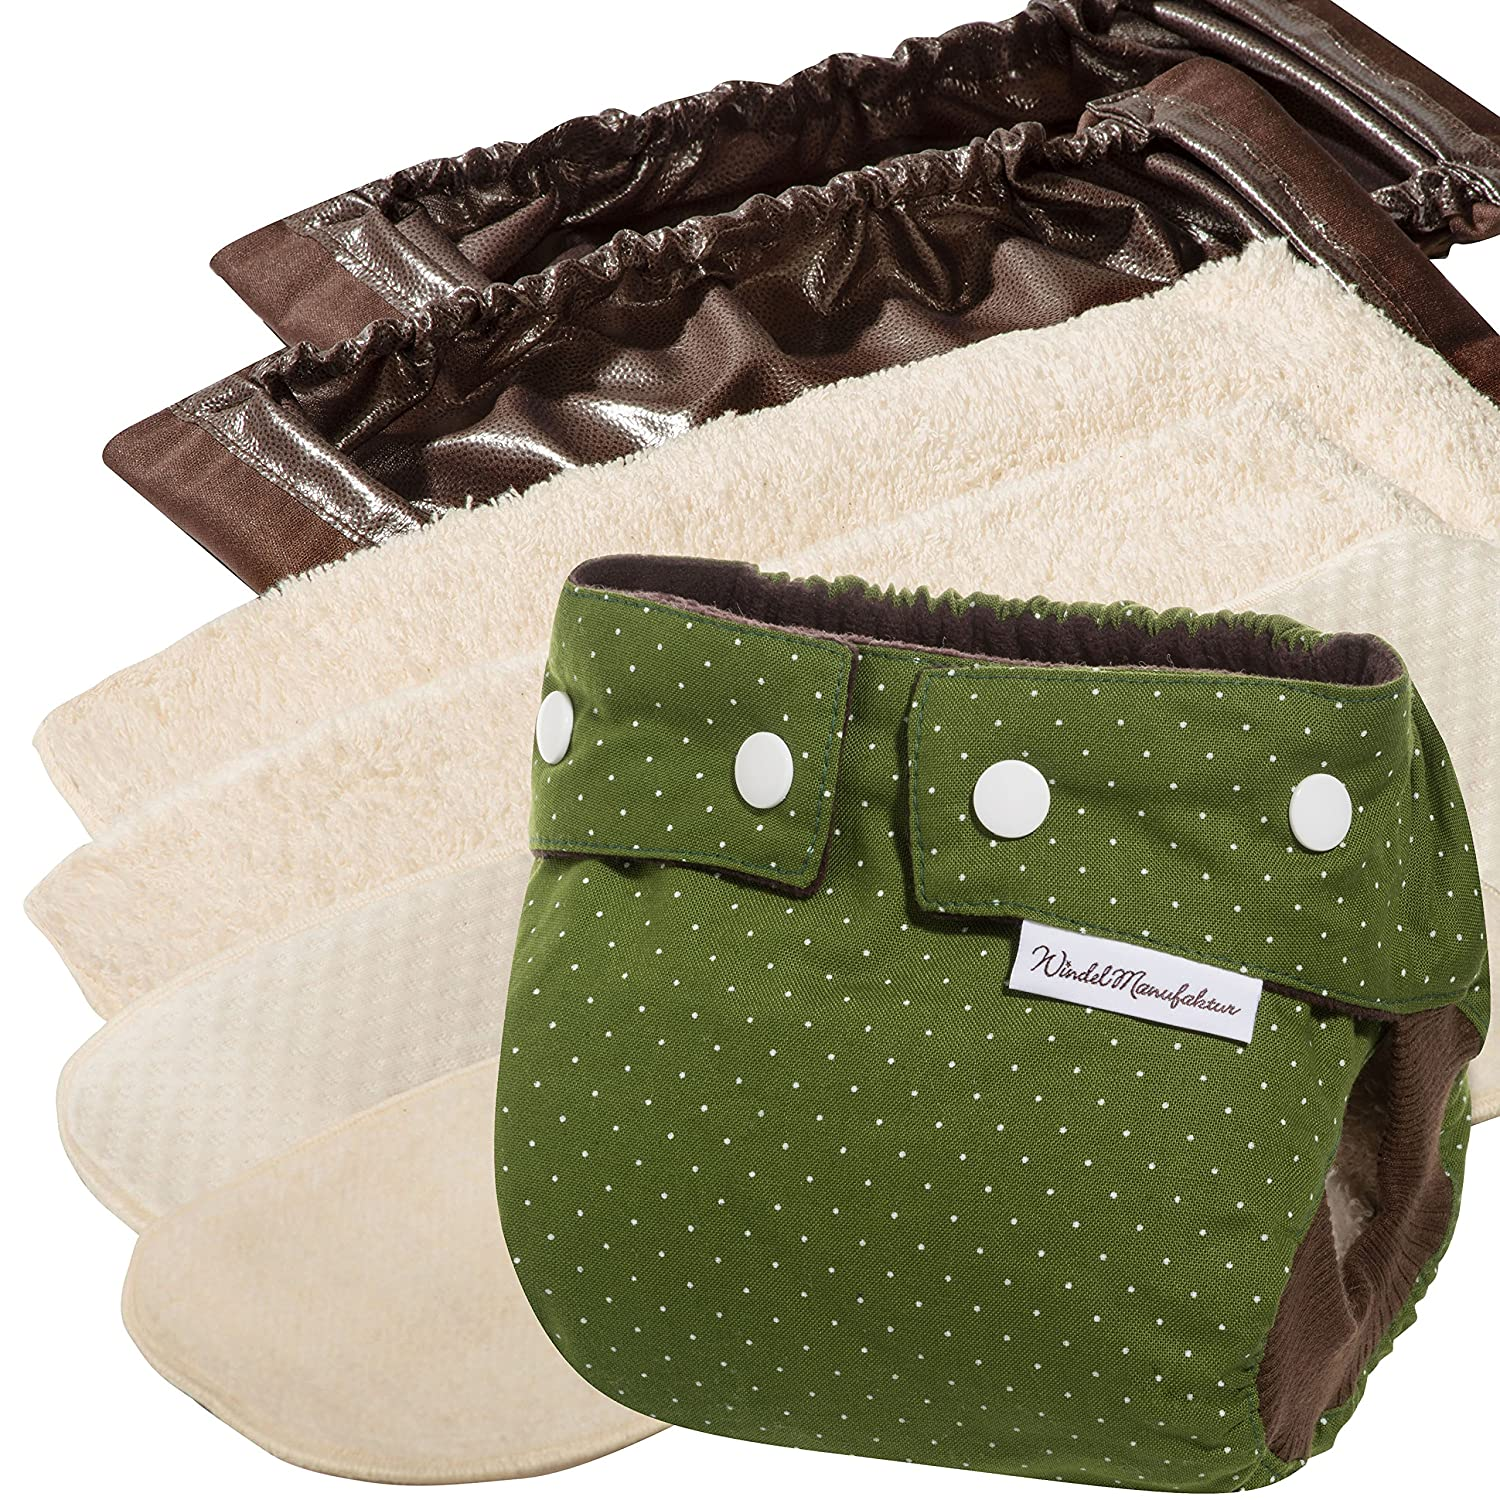 WindelManufaktur Cloth Nappies: Beginner's set, reusable and washable diapers, Made in Germany